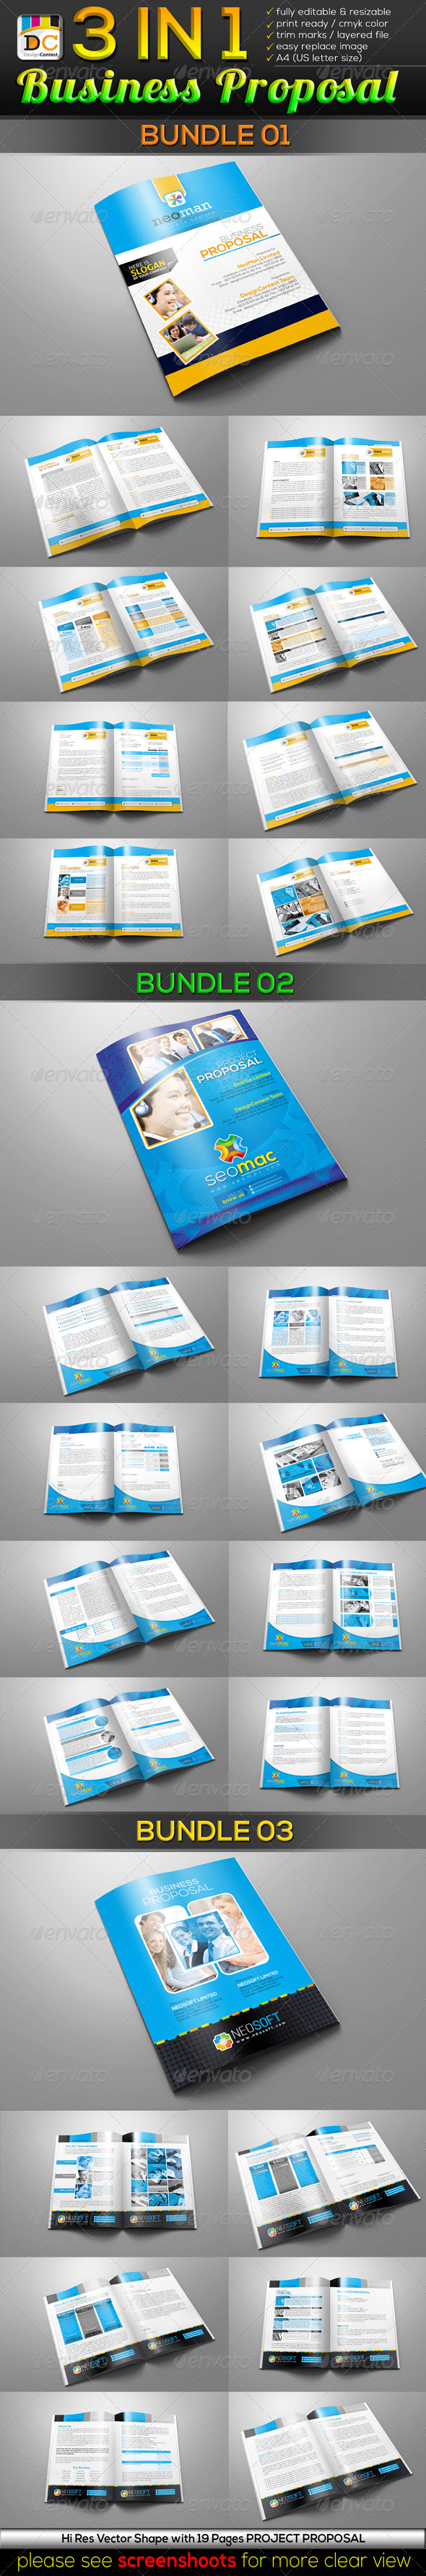 3 in 1 Business/Project Proposal Bundle - Proposals & Invoices Stationery